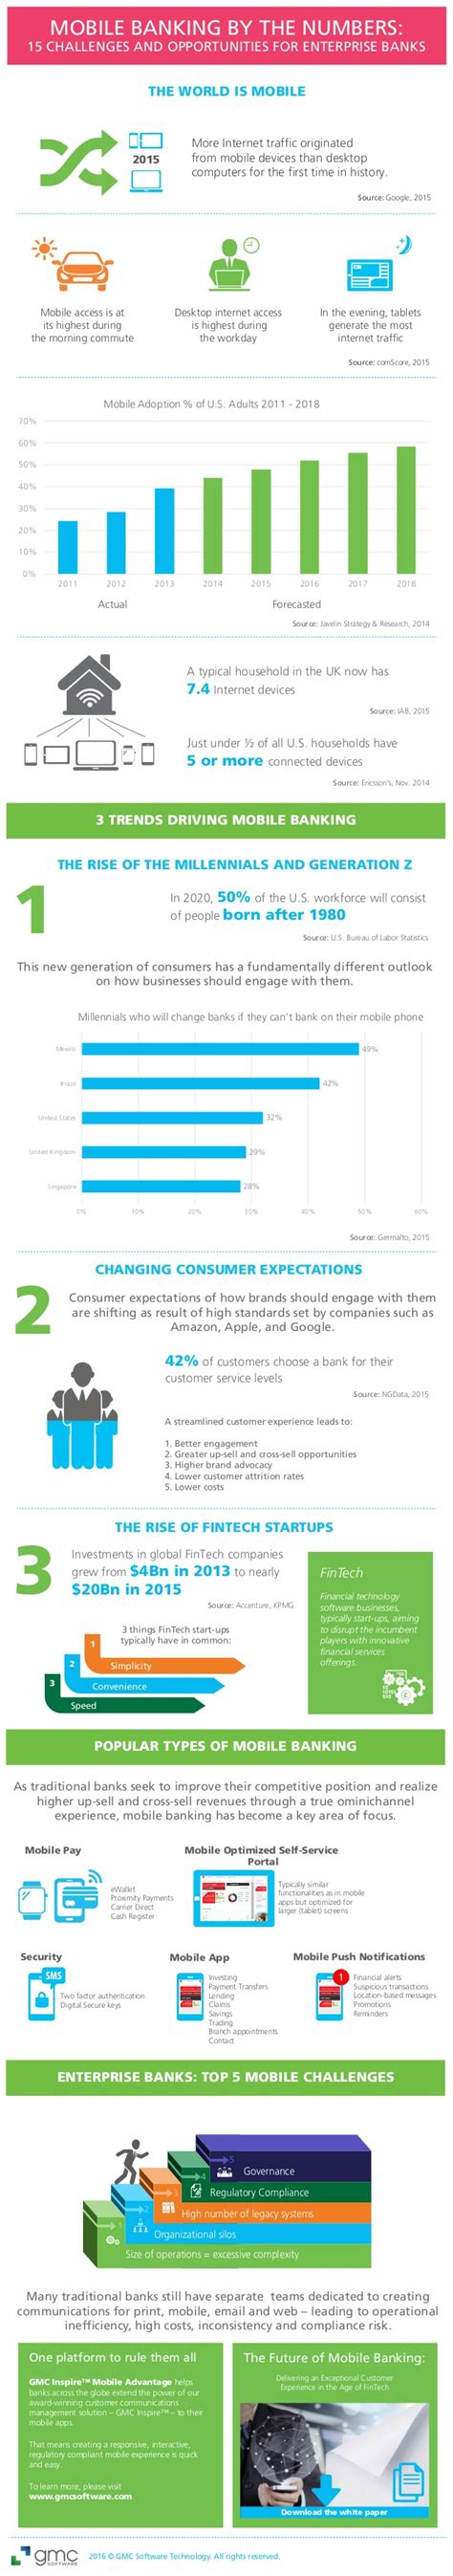 challenges of mobile banking infographic mobile banking by the numbers 15 challenges